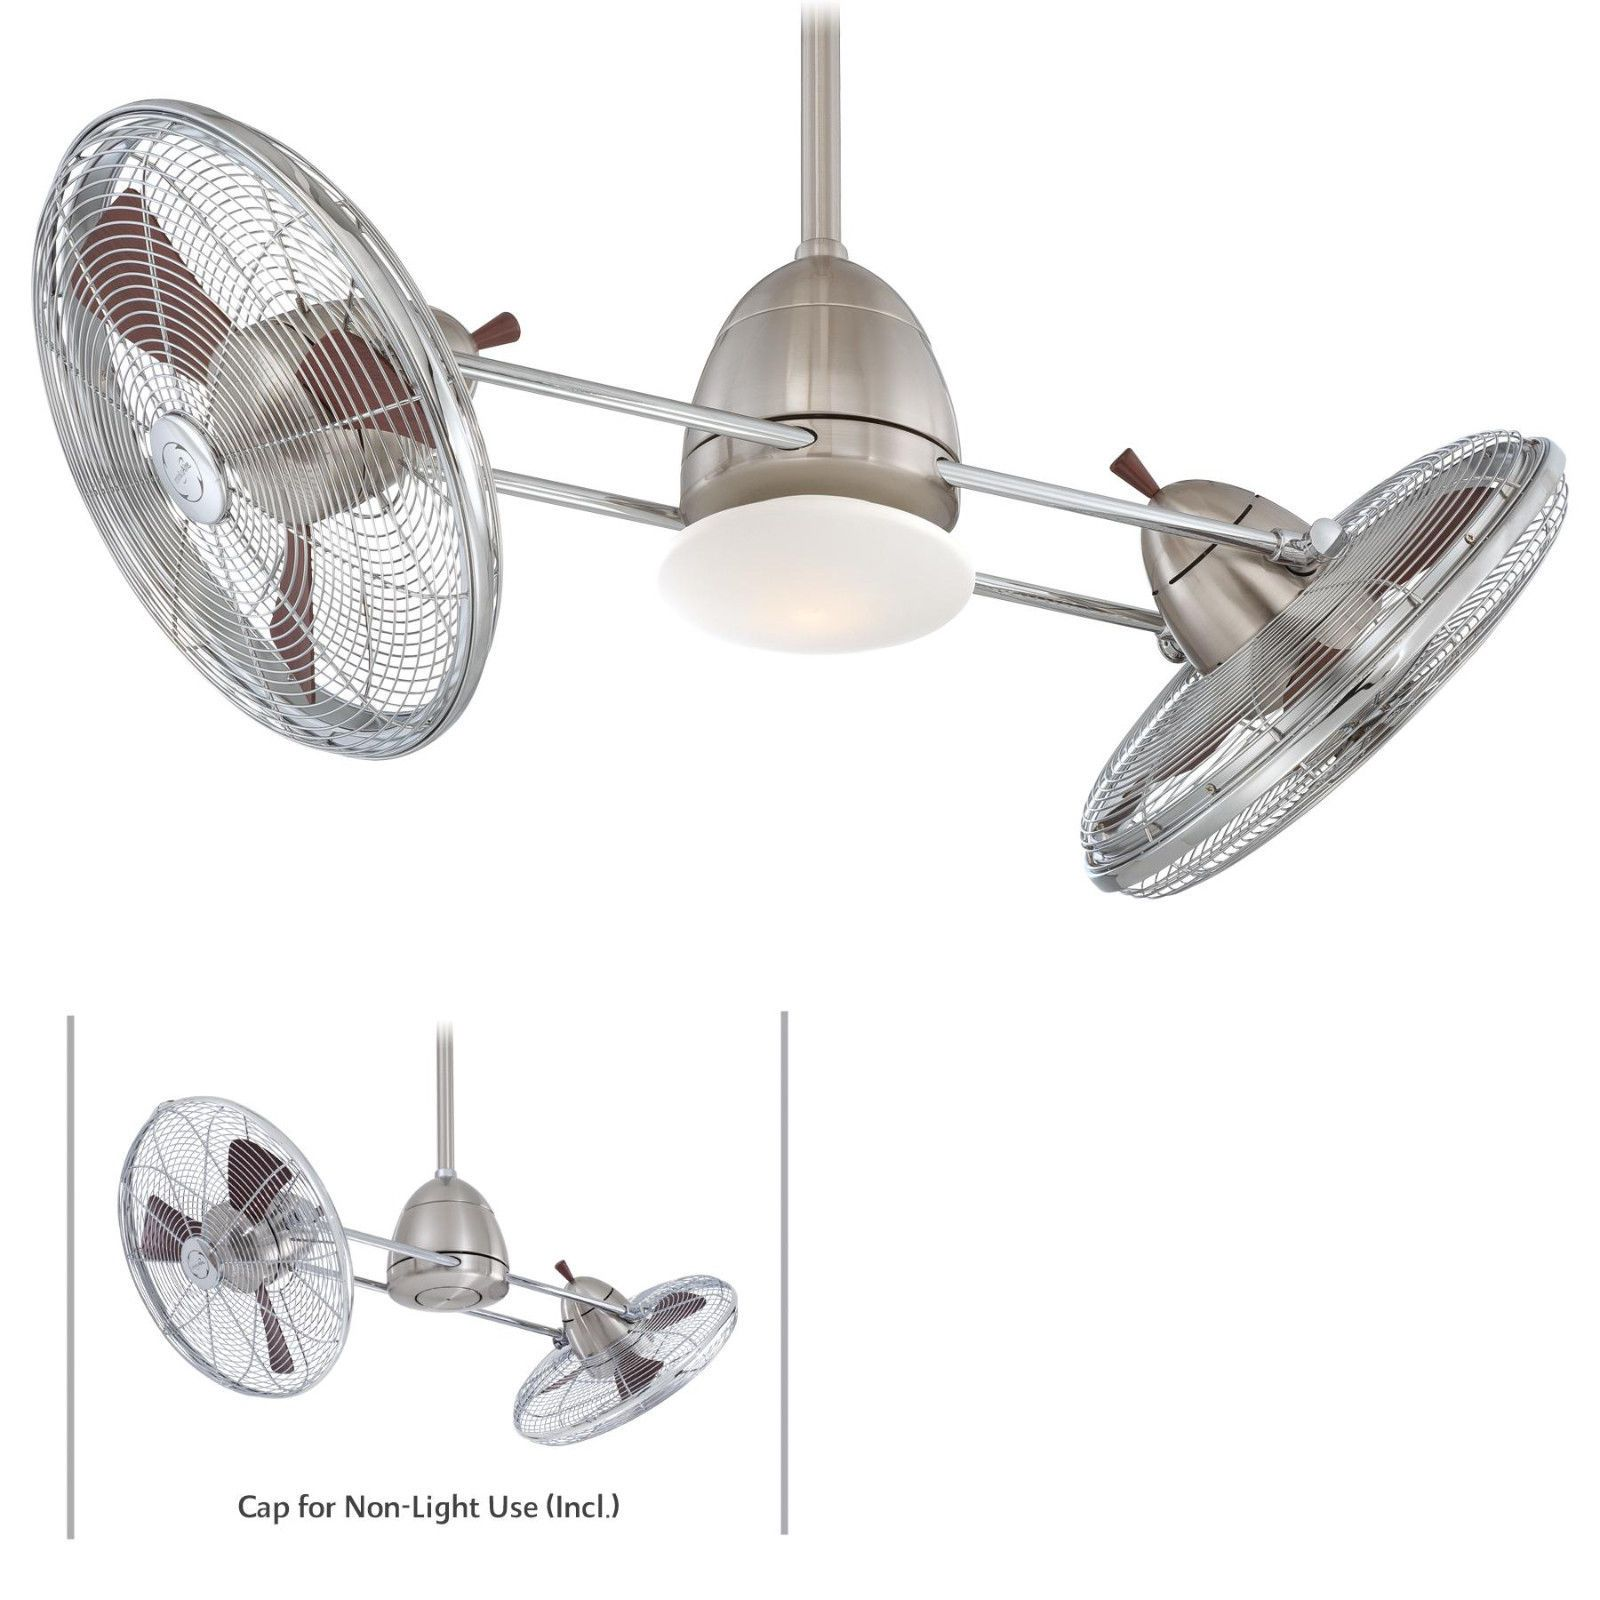 Kitchen Exhaust Fan With Light Great Small Outdoor Ceiling Fans Reviews Bathroom Exhaust Fan